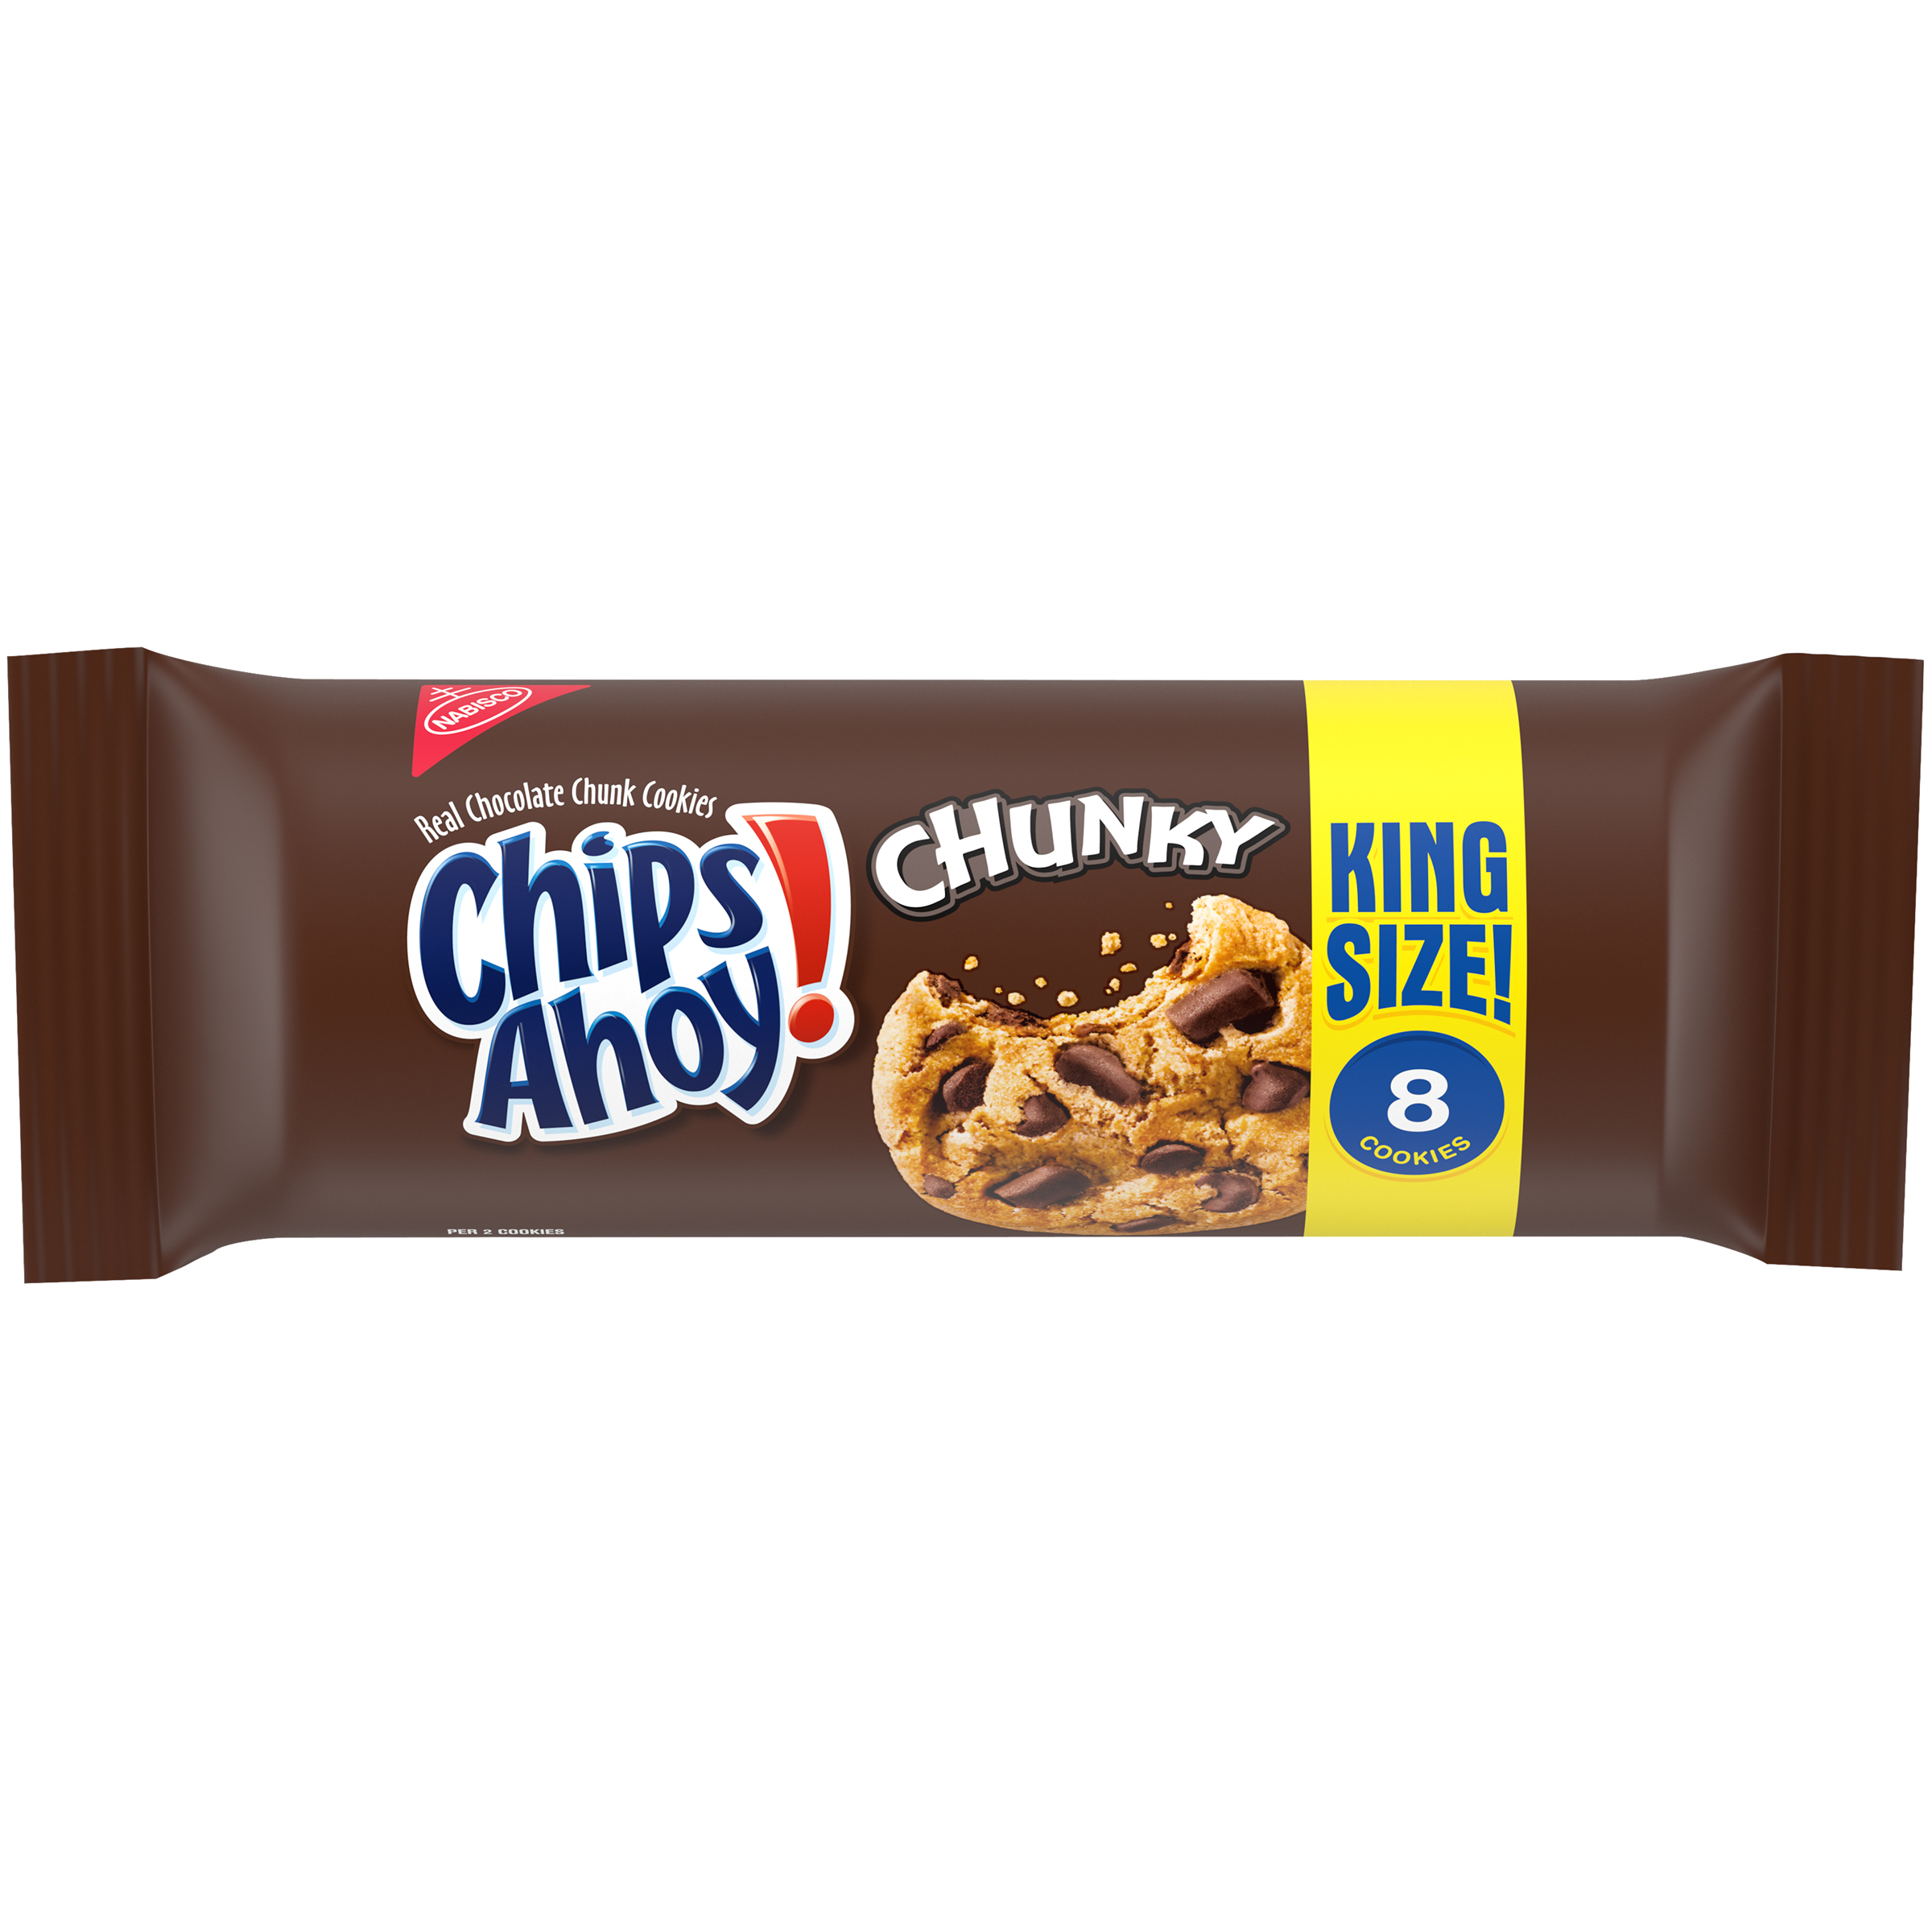 CHIPS AHOY! Chunky Chocolate Chip Cookies, King Size (4.15oz)